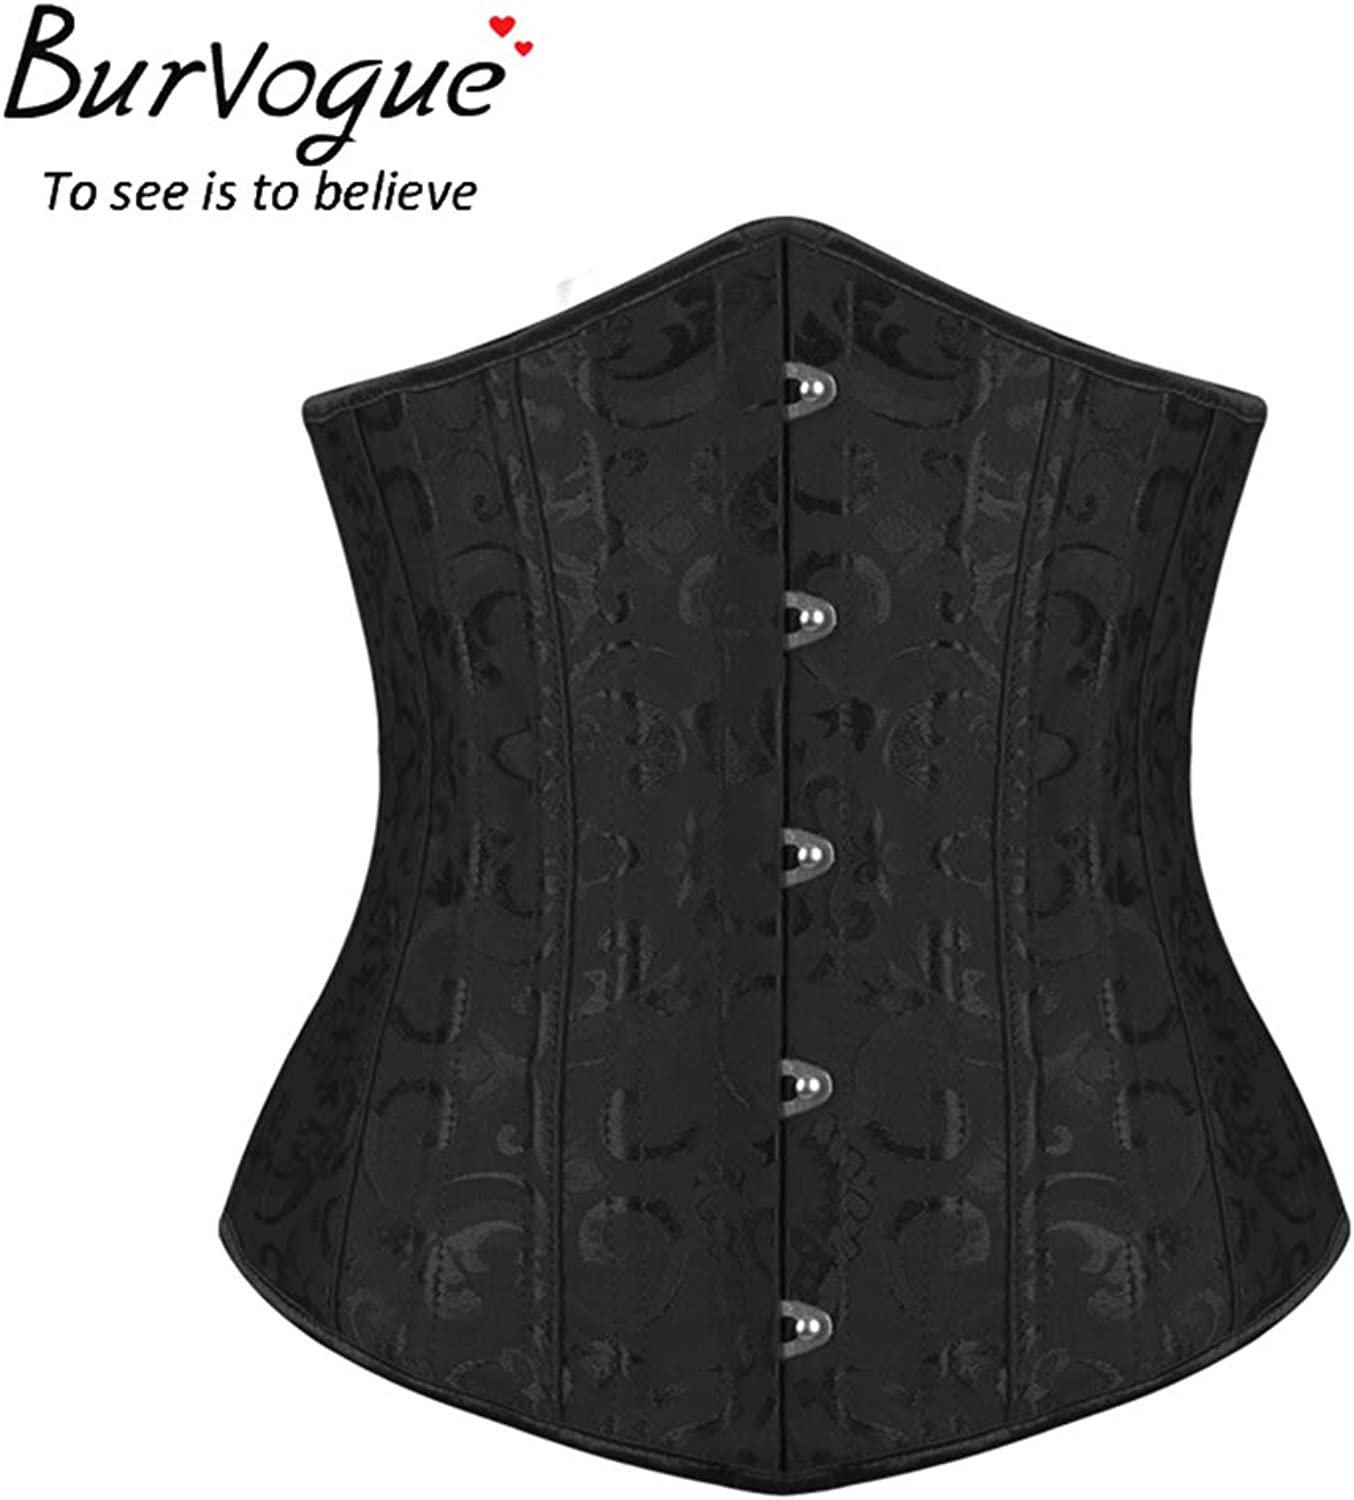 Yaning Corset Slimming Bustier Waist Control Corselets Lace Up Waist Trainer